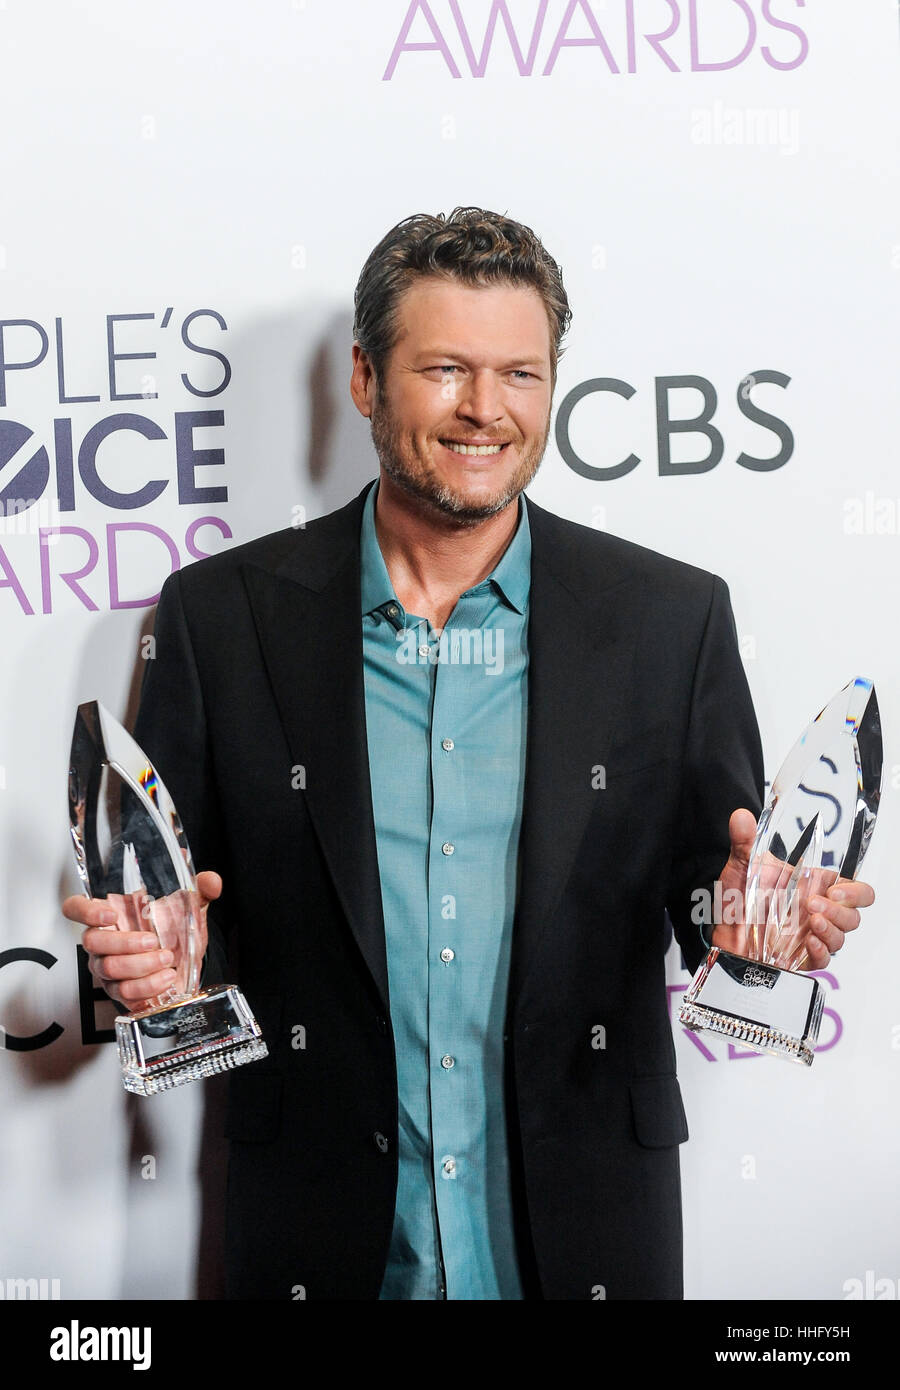 Los Angeles, USA. 18th Jan, 2017. Blake Shelton poses with the awards for Favorite Country Male Singer and Favorite - Stock Image